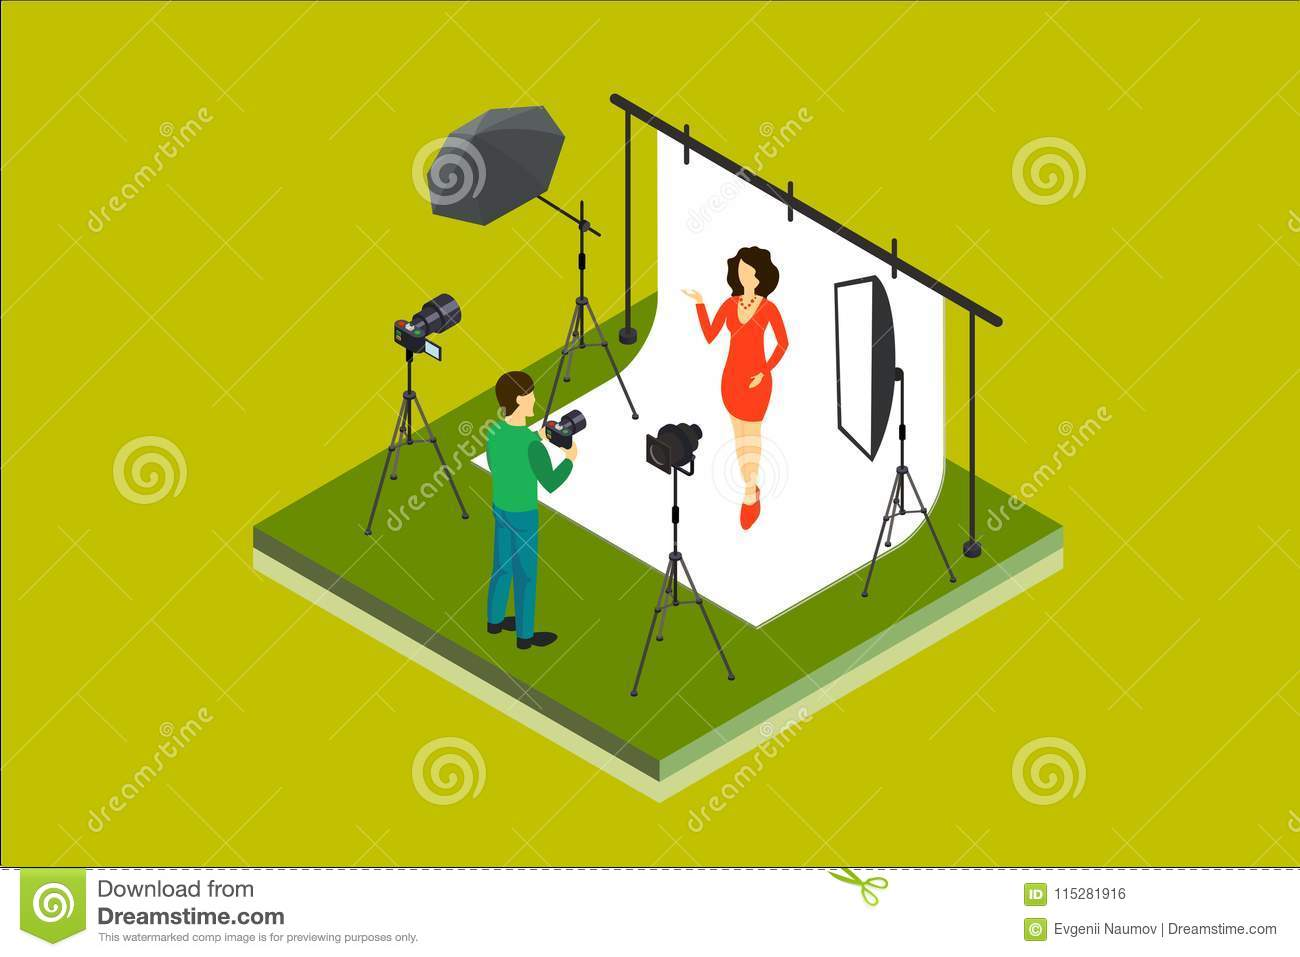 Photographer shooting model in studio. Photo equipment digital camera, softbox, spotlight, backdrop, umbrella. Isometric